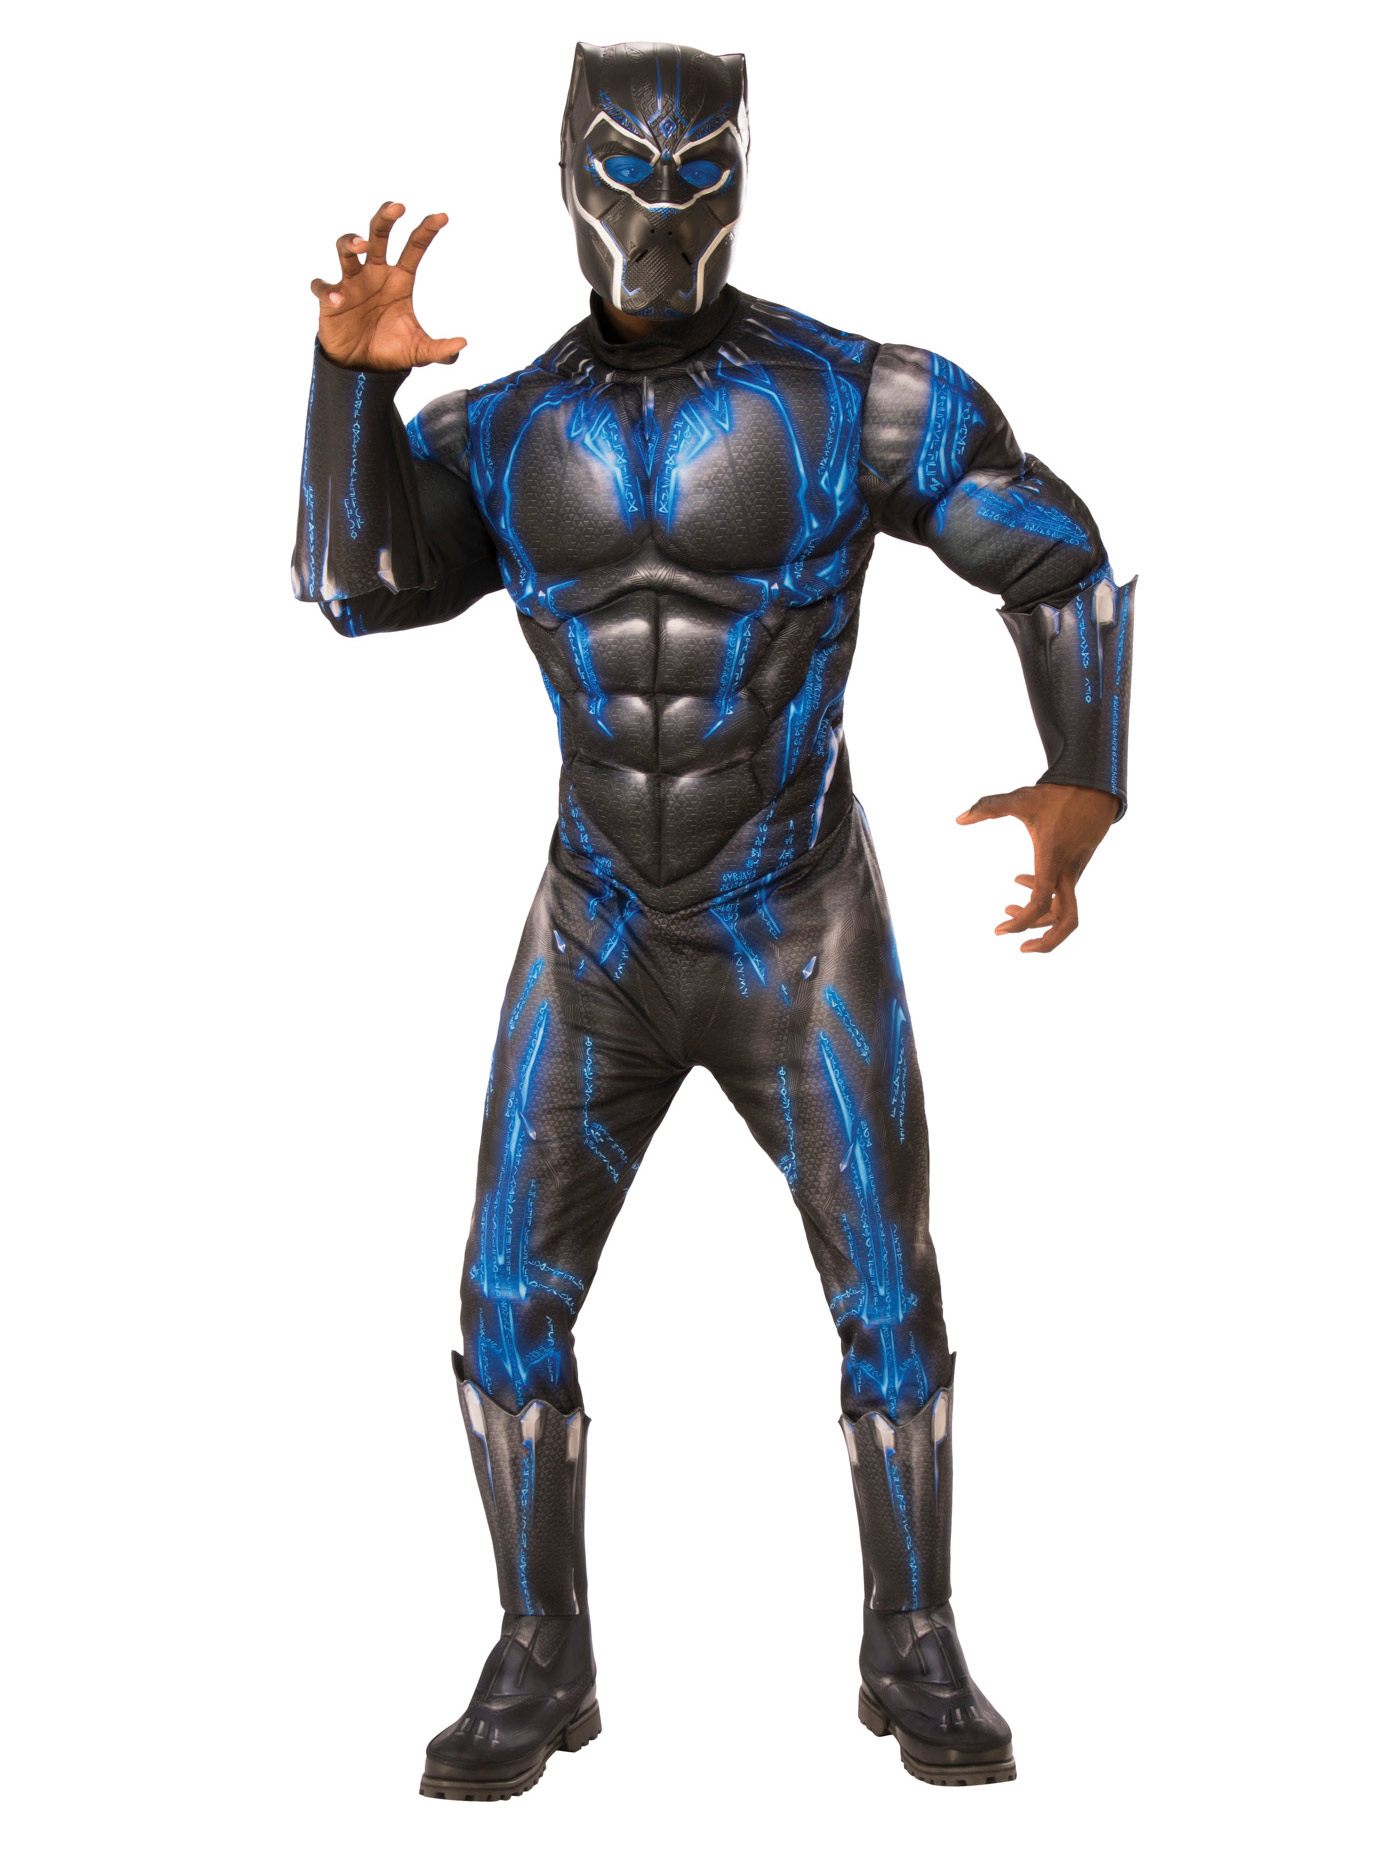 Marvel Black Panther Movie Mens Deluxe Black Panther Battle Suit Halloween Costume - Walmart.com  sc 1 st  Walmart & Marvel Black Panther Movie Mens Deluxe Black Panther Battle Suit ...